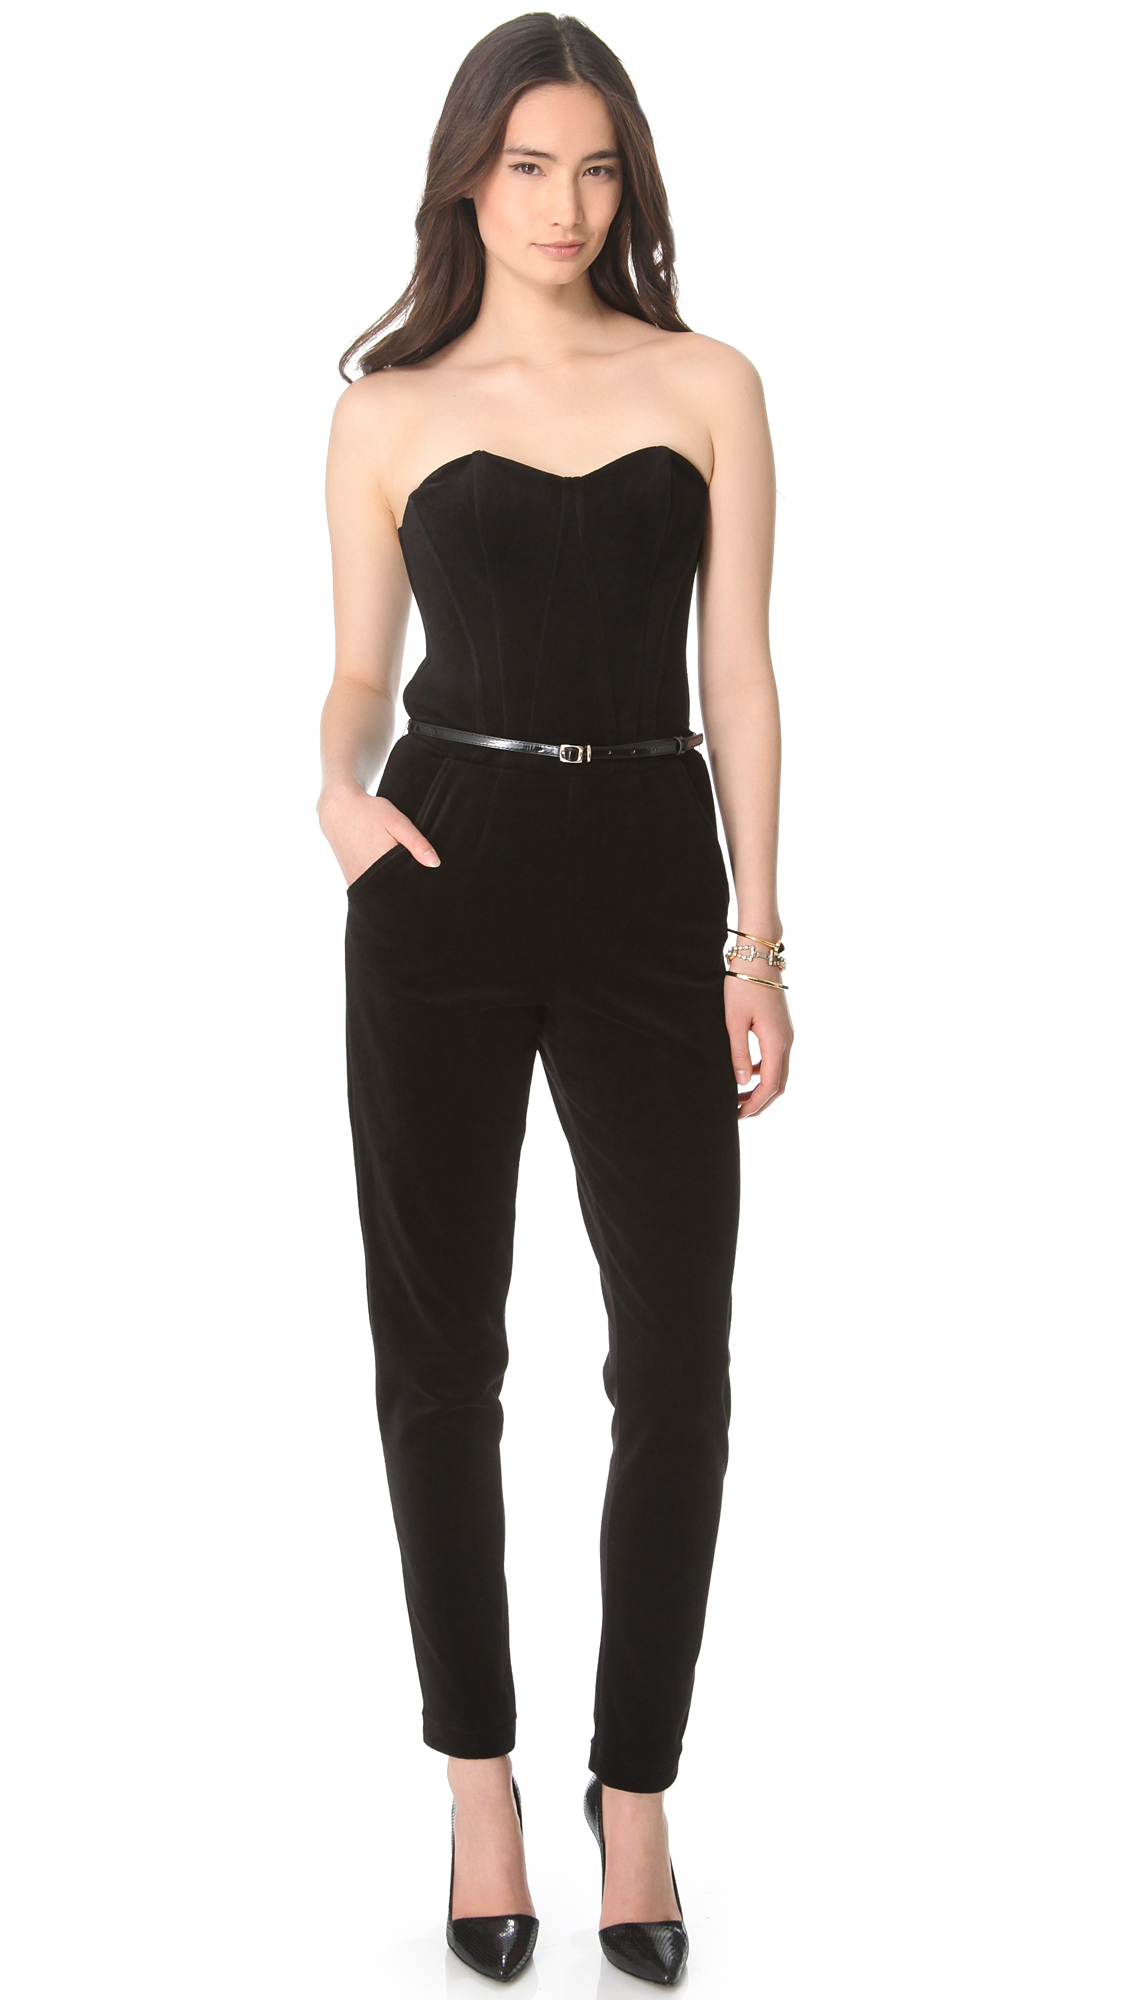 Lyst - Juicy Couture Bustier Velour Strapless Jumpsuit in ...